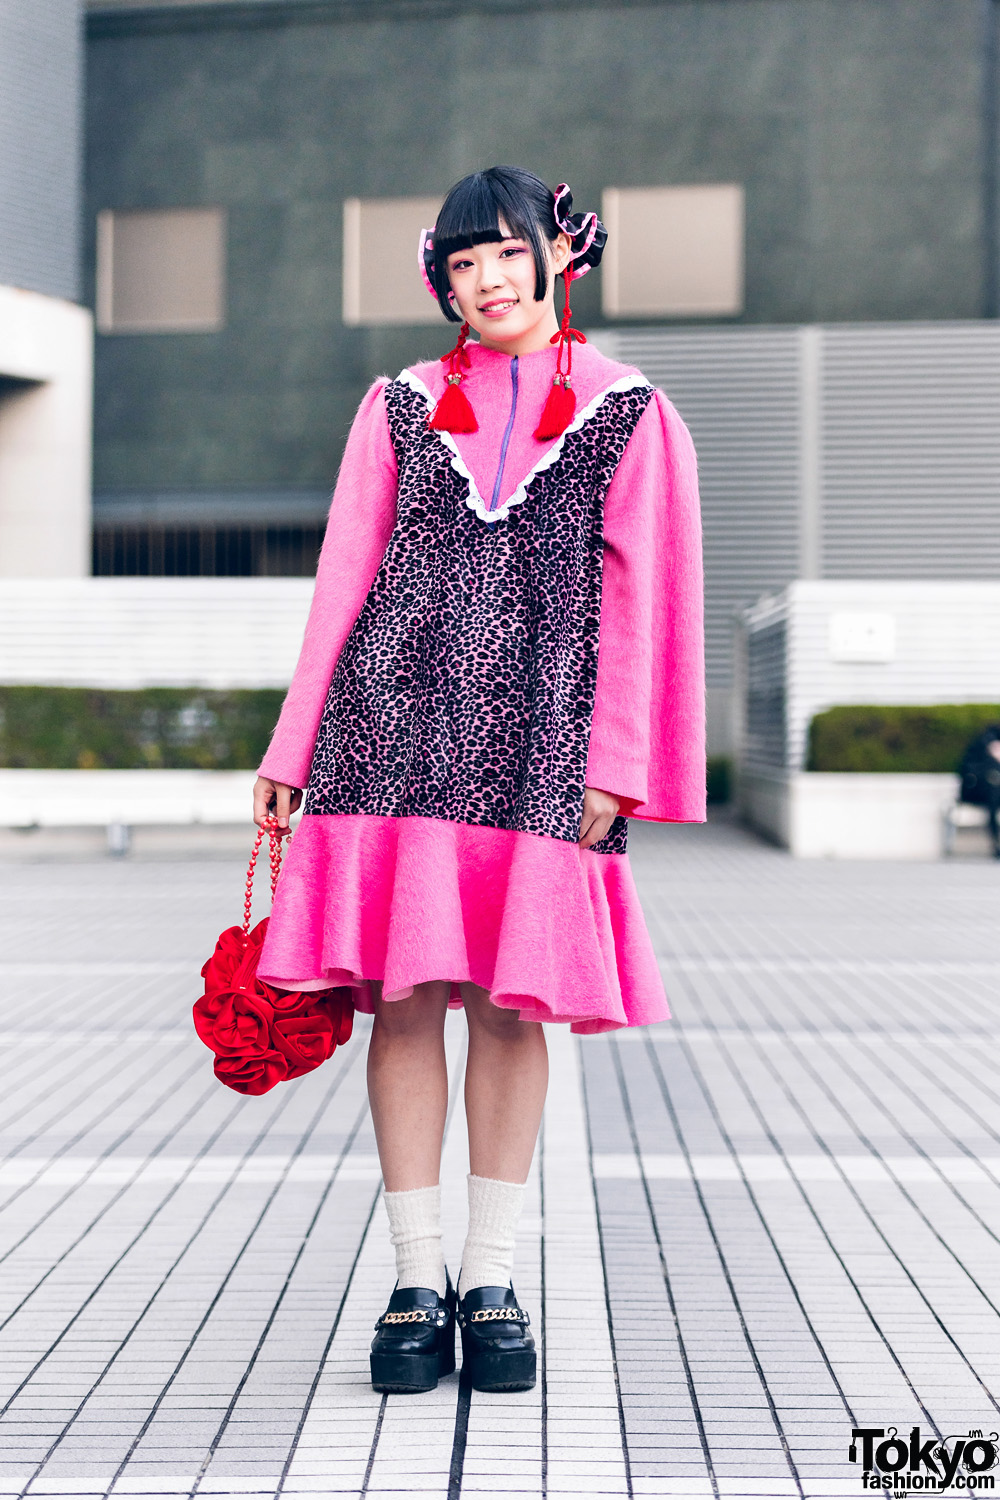 Bunka Fashion College Handmade & Vintage Street Fashion w/ Leopard Print Dress & Flower Bag